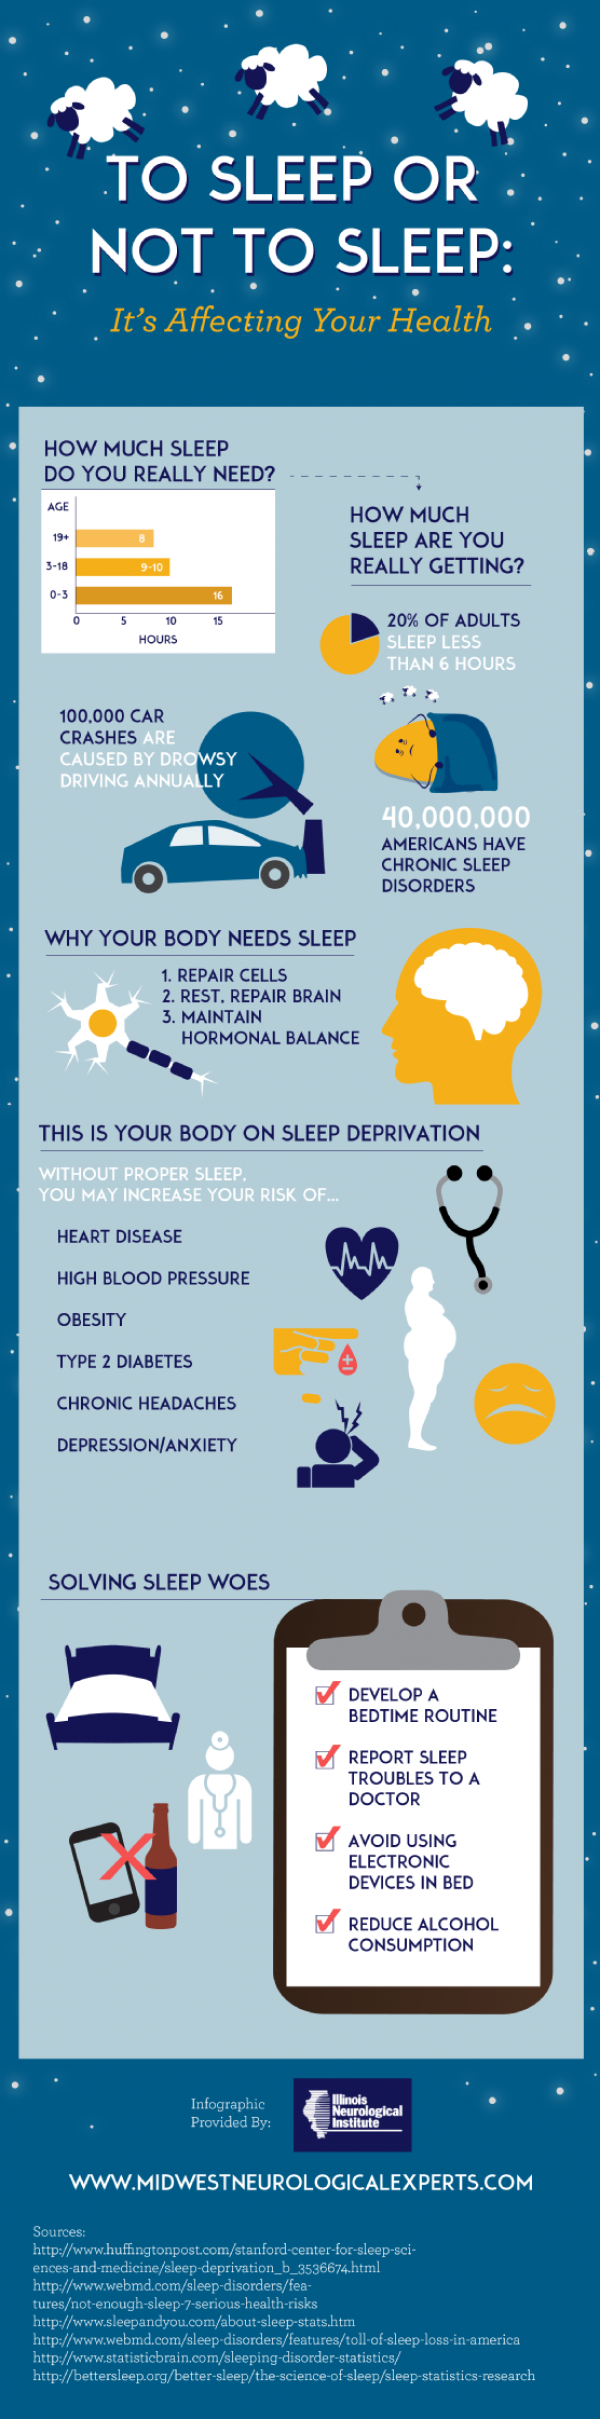 To Sleep or Not to Sleep: Itâs Affecting Your Health